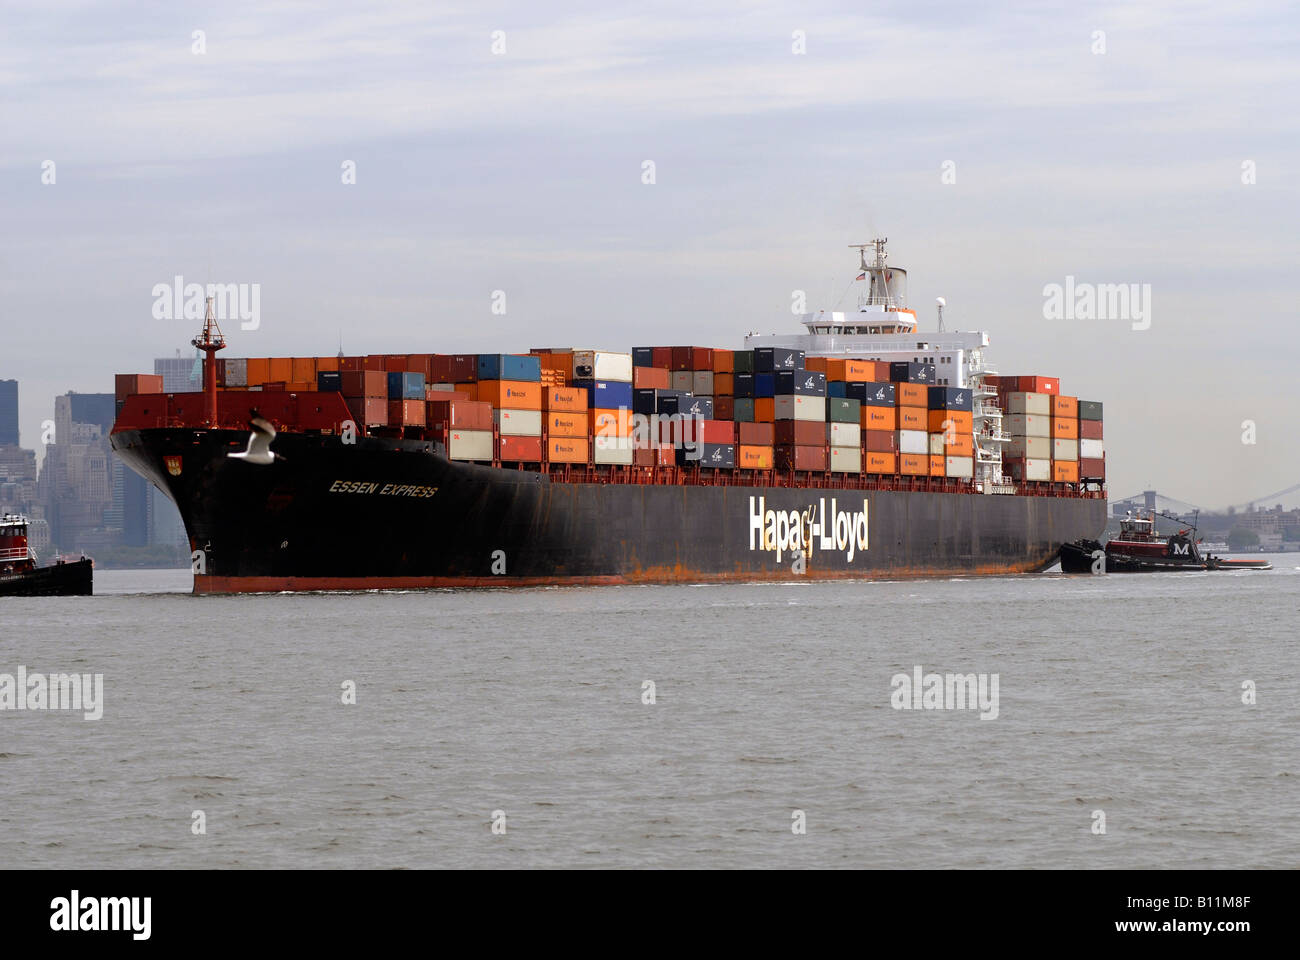 The Essen Express of the Hapag Lloyd line leaves port on the Hudson River North River in New Jersey laden with containers Stock Photo